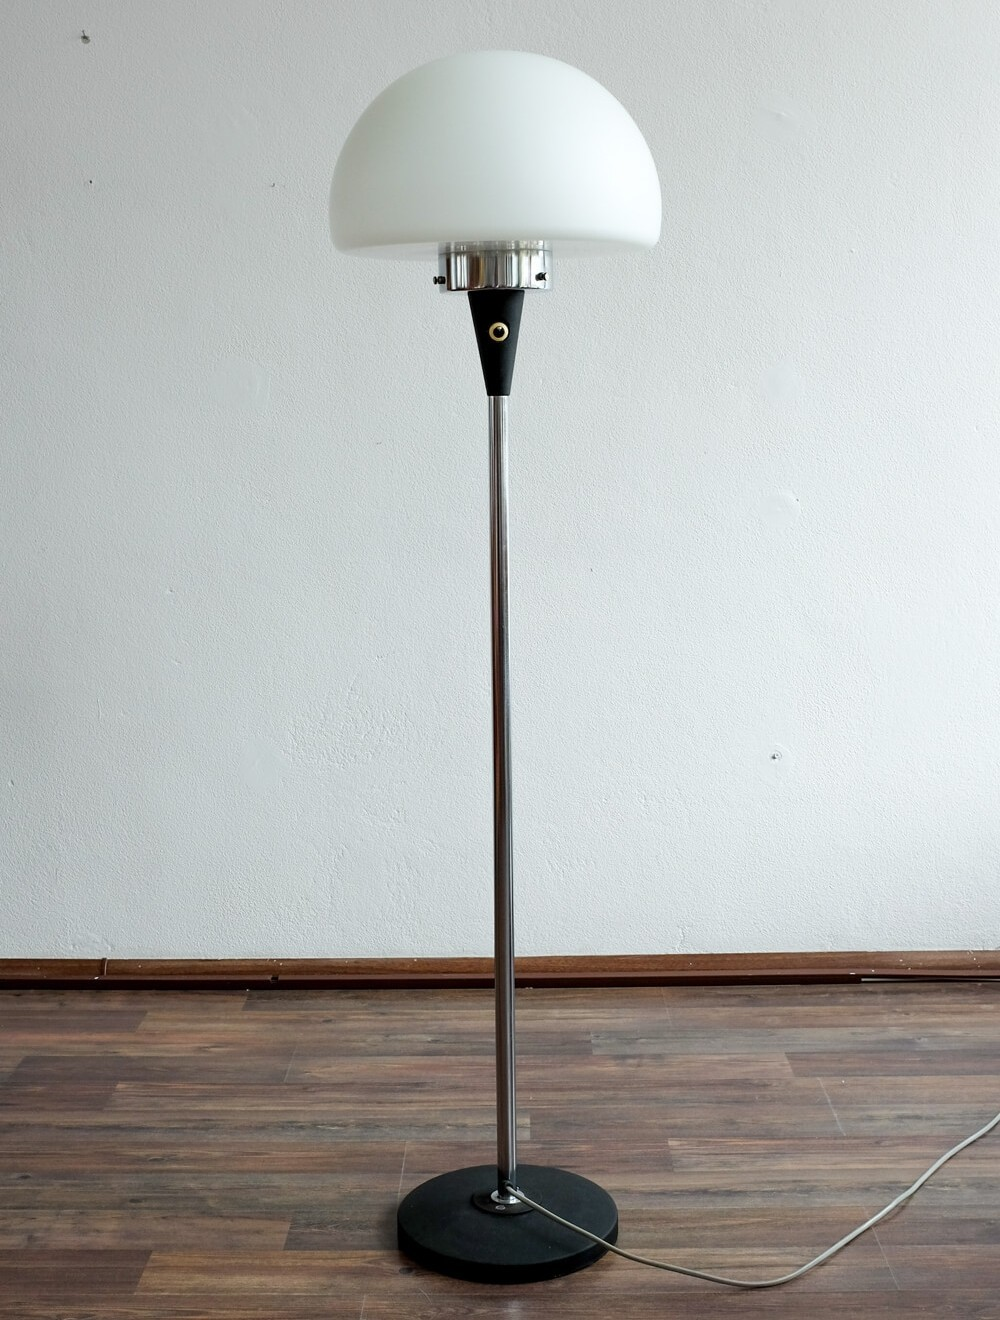 Vintage floor lamp 1960s 73221 vintage floor lamp 1960s aloadofball Image collections